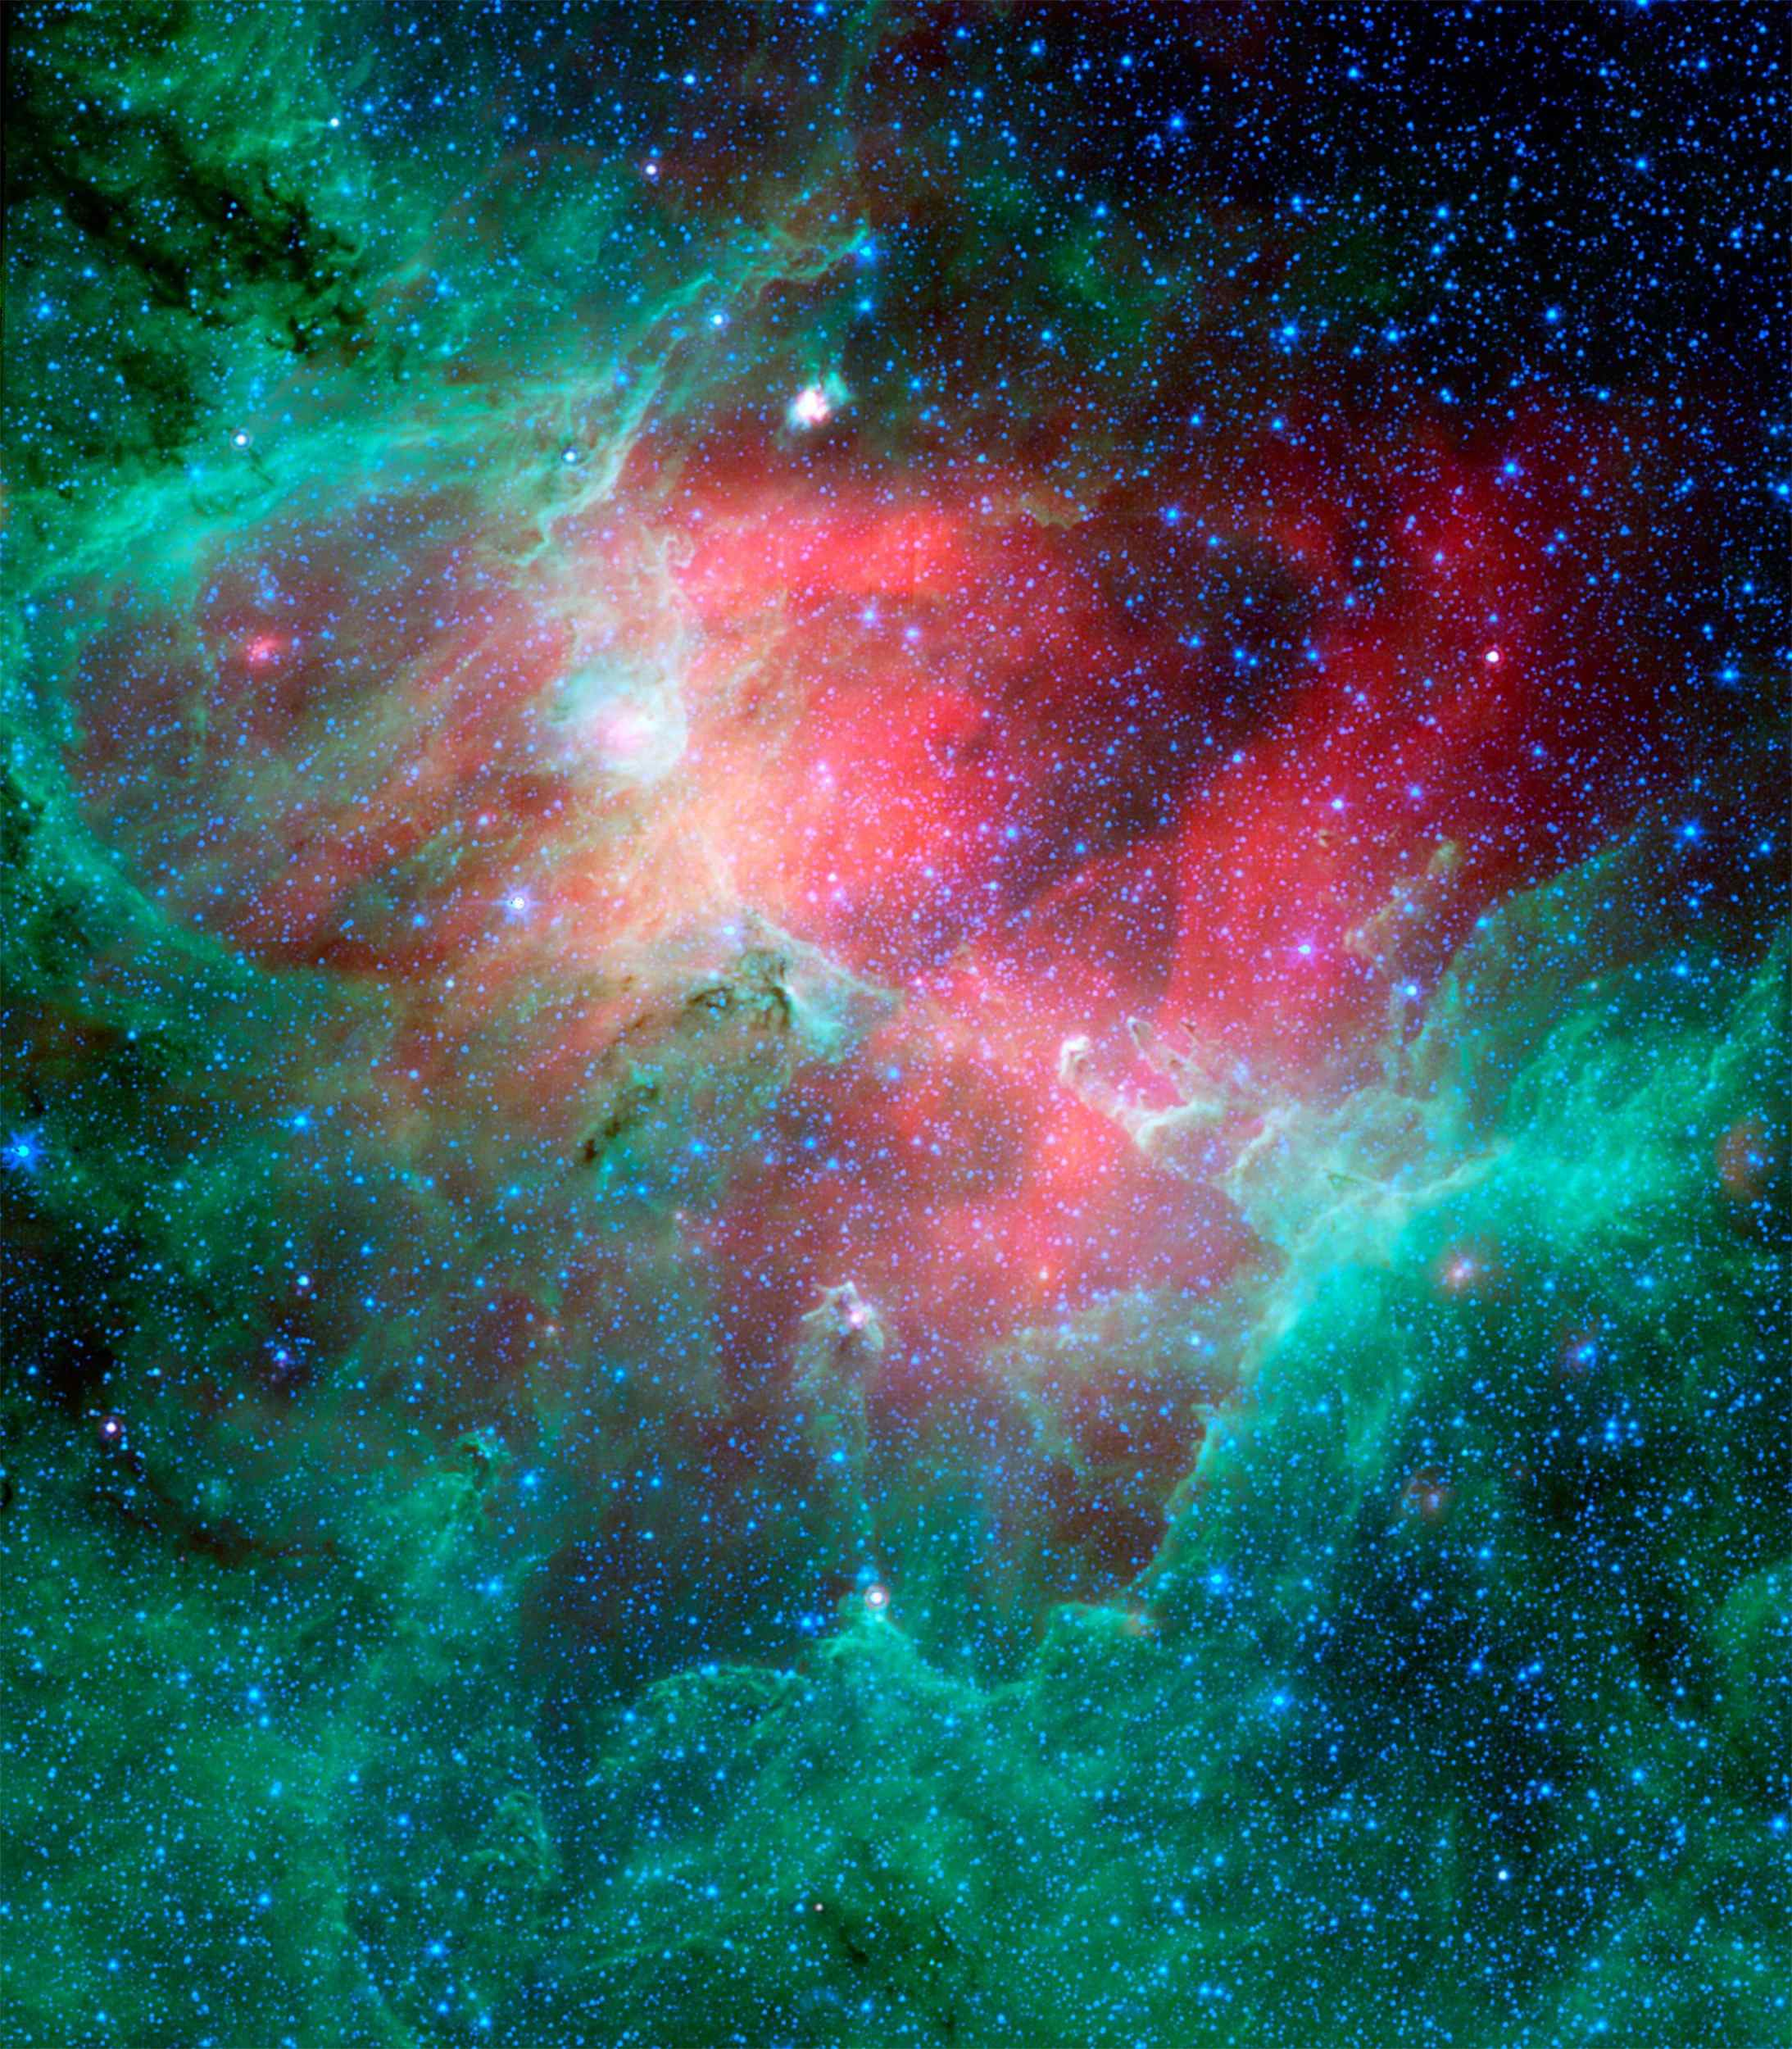 This majestic view taken by NASA's Spitzer Space Telescope tells an untold story of life and death in the Eagle nebula, an industrious star-making factory located 7,000 light-years away in the Serpens constellation.